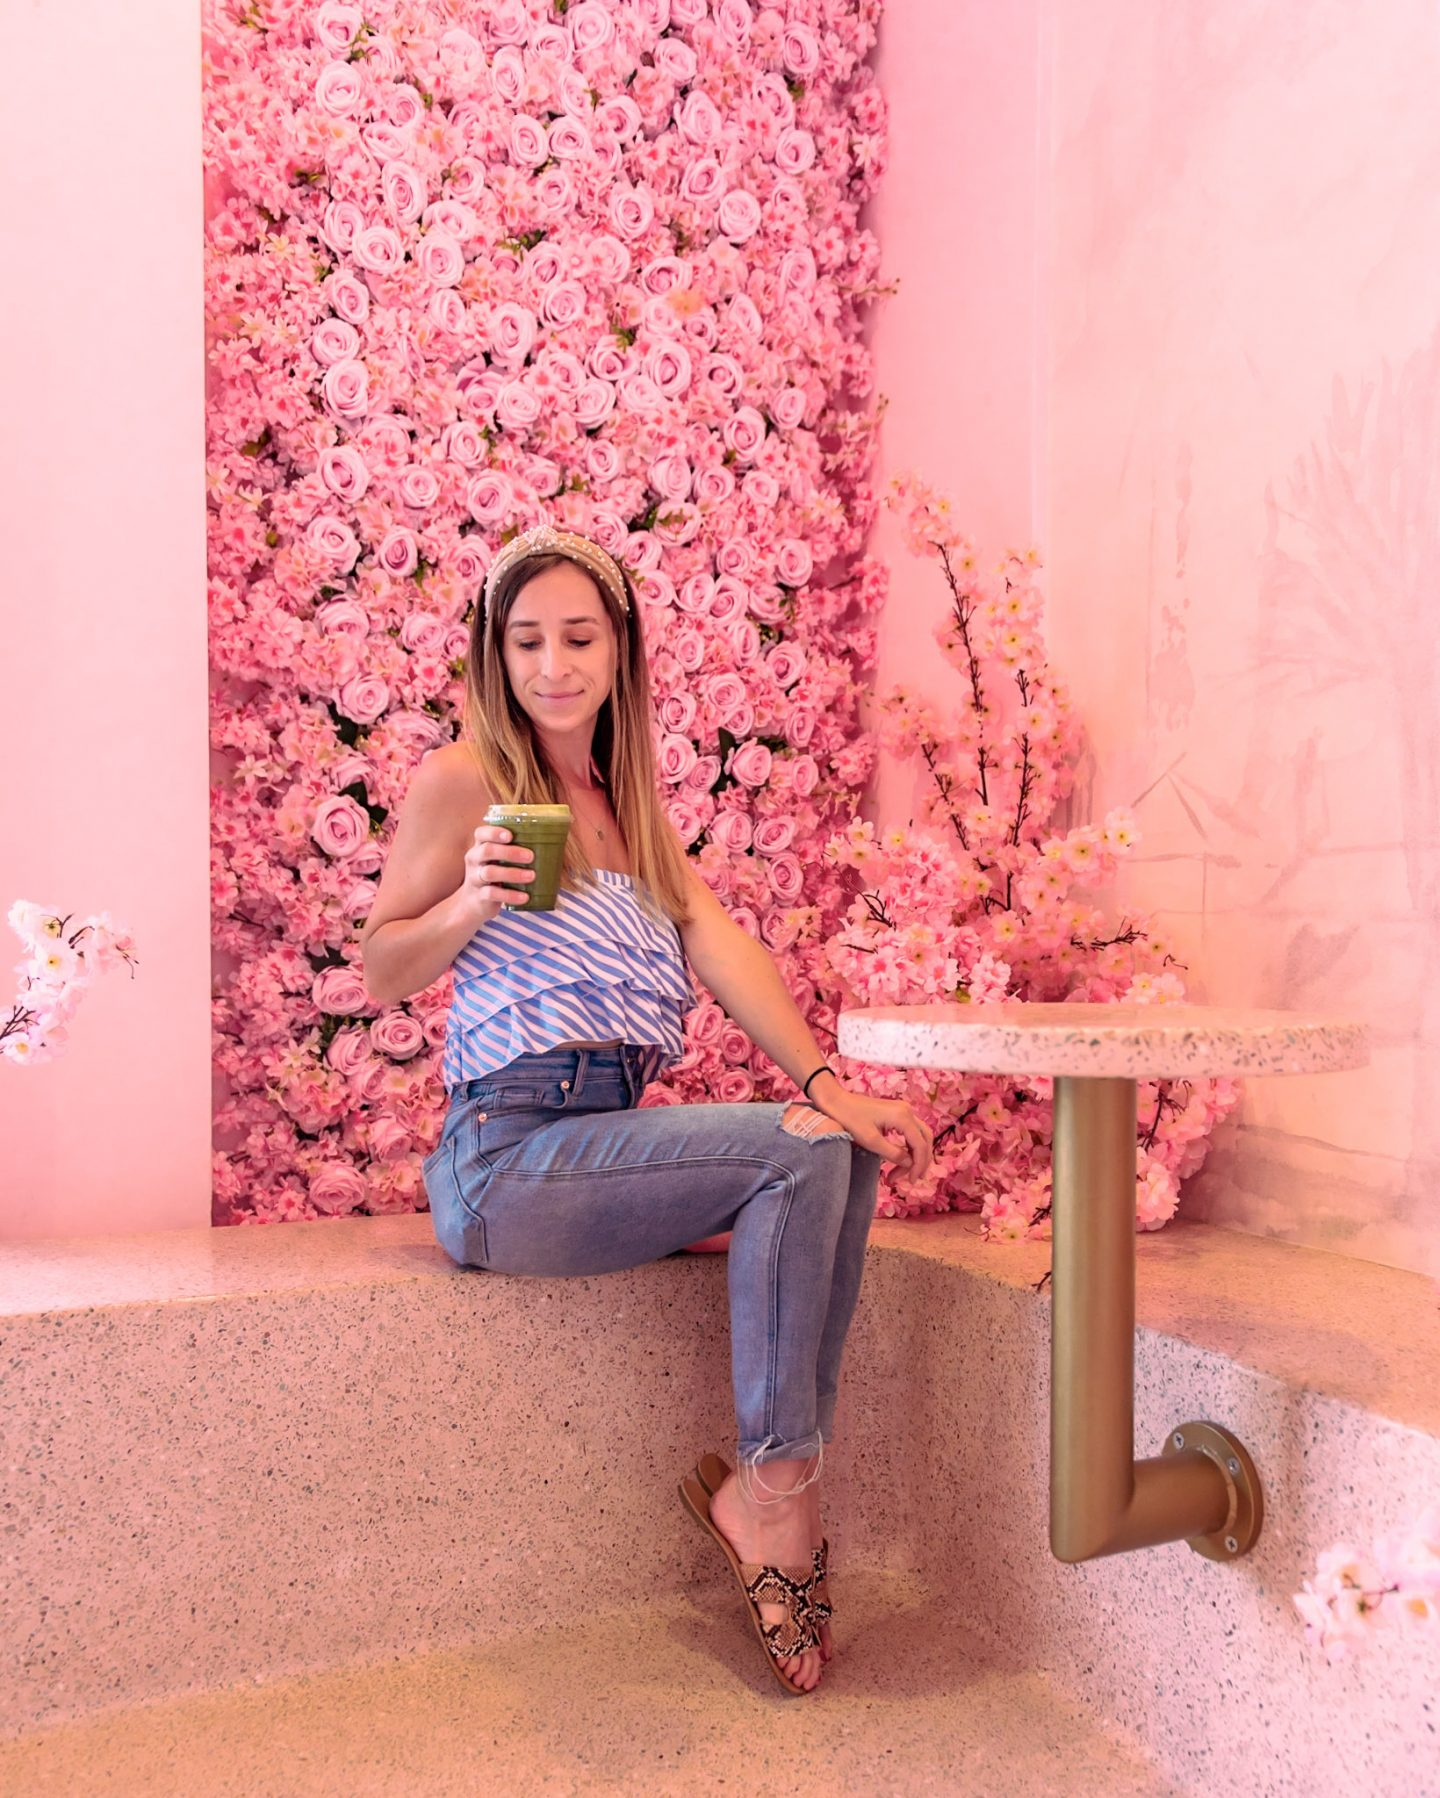 The pink floral wall at Holy matcha in downtown san diego